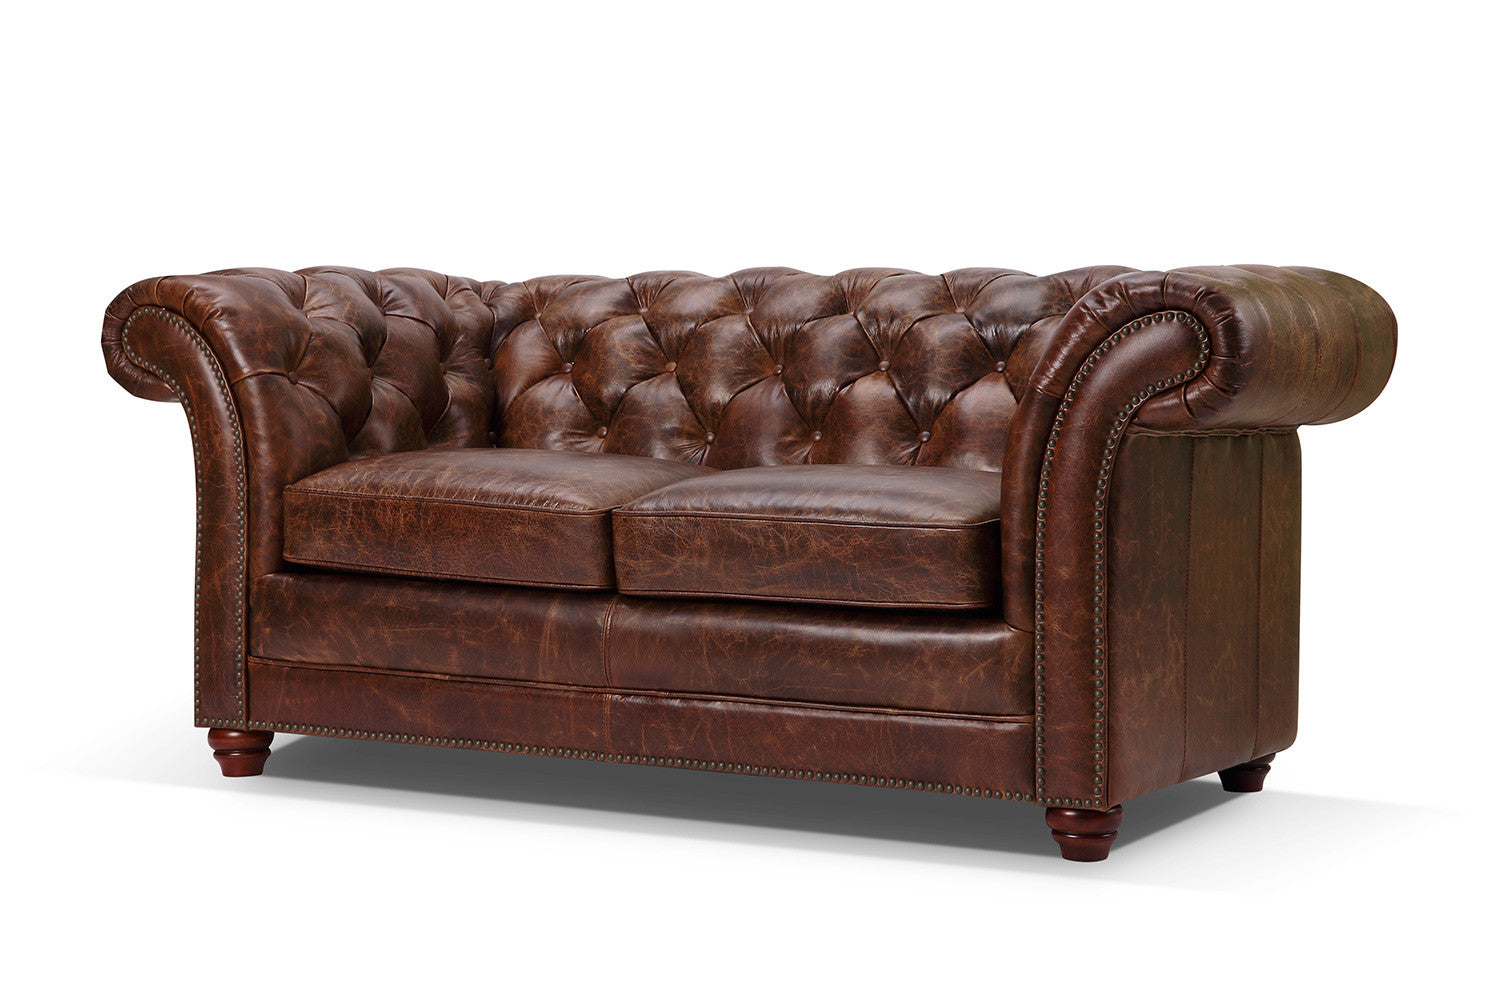 Canap chesterfield en cuir westminster 2 places rose for Canape chesterfield cuir